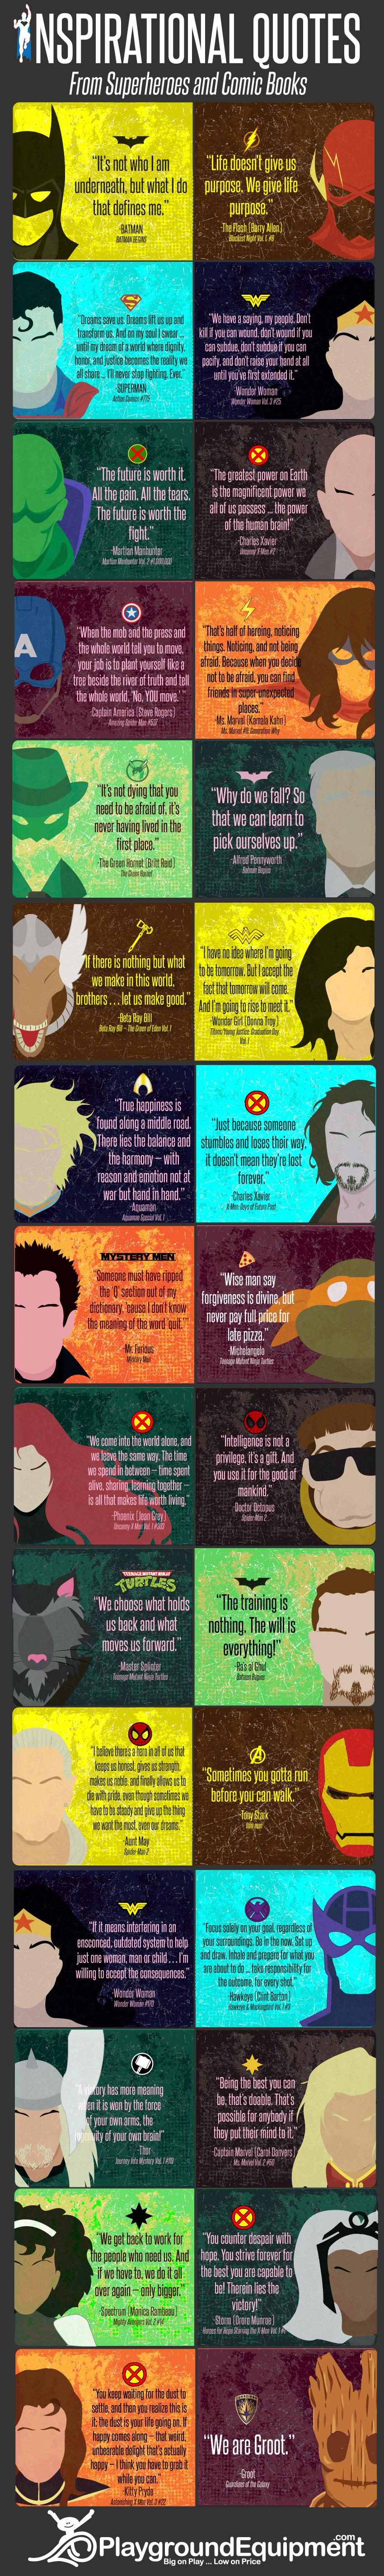 [Image] Inspirational Quotes from Superheroes and Comic Books